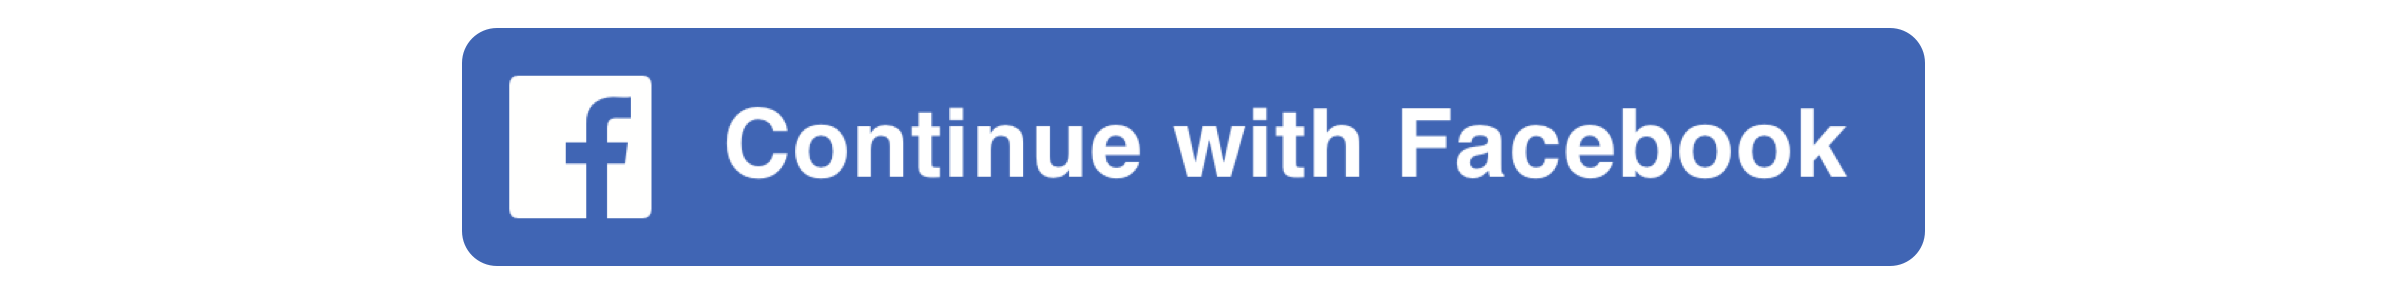 Continue with Facebook.png